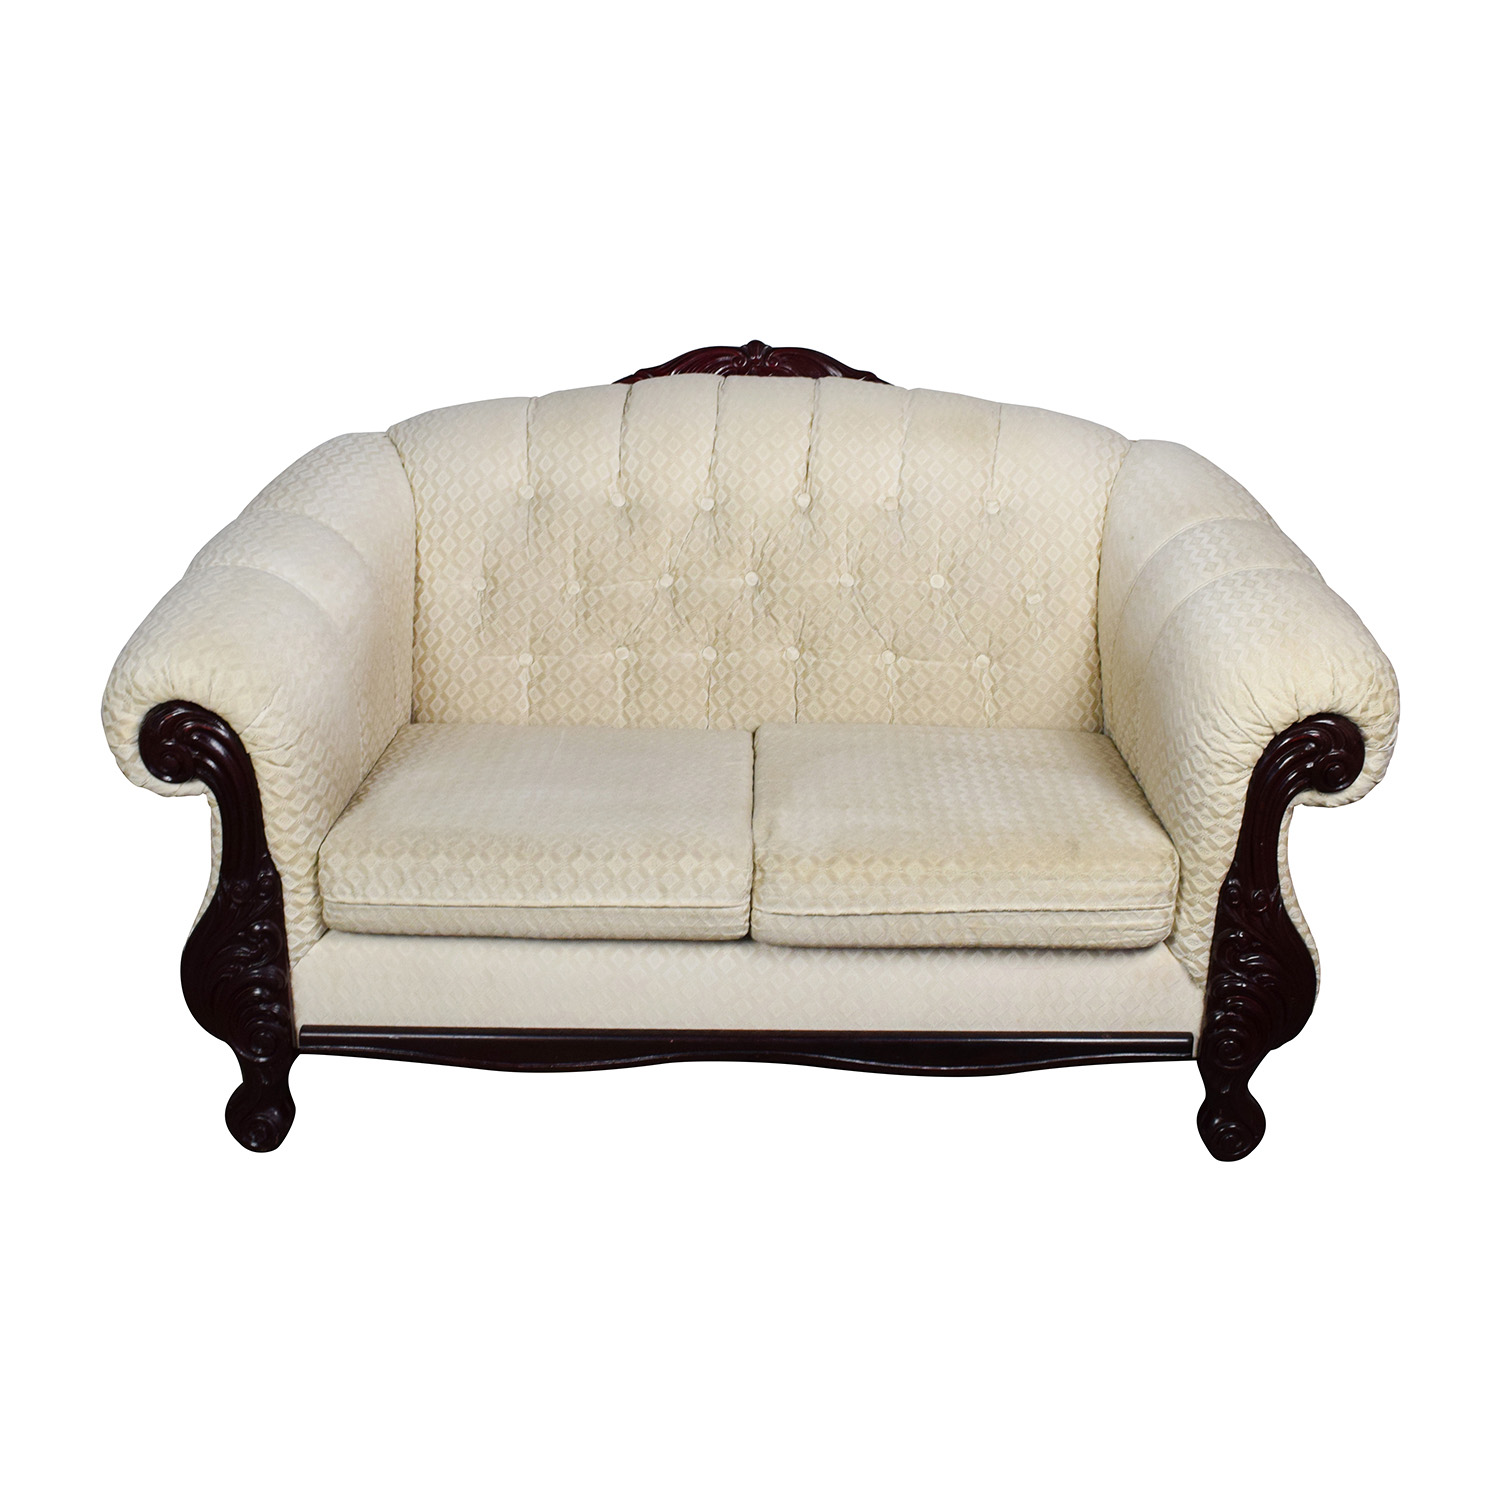 Beige Love Seat with Carved Mahogany Wood Base Sofas